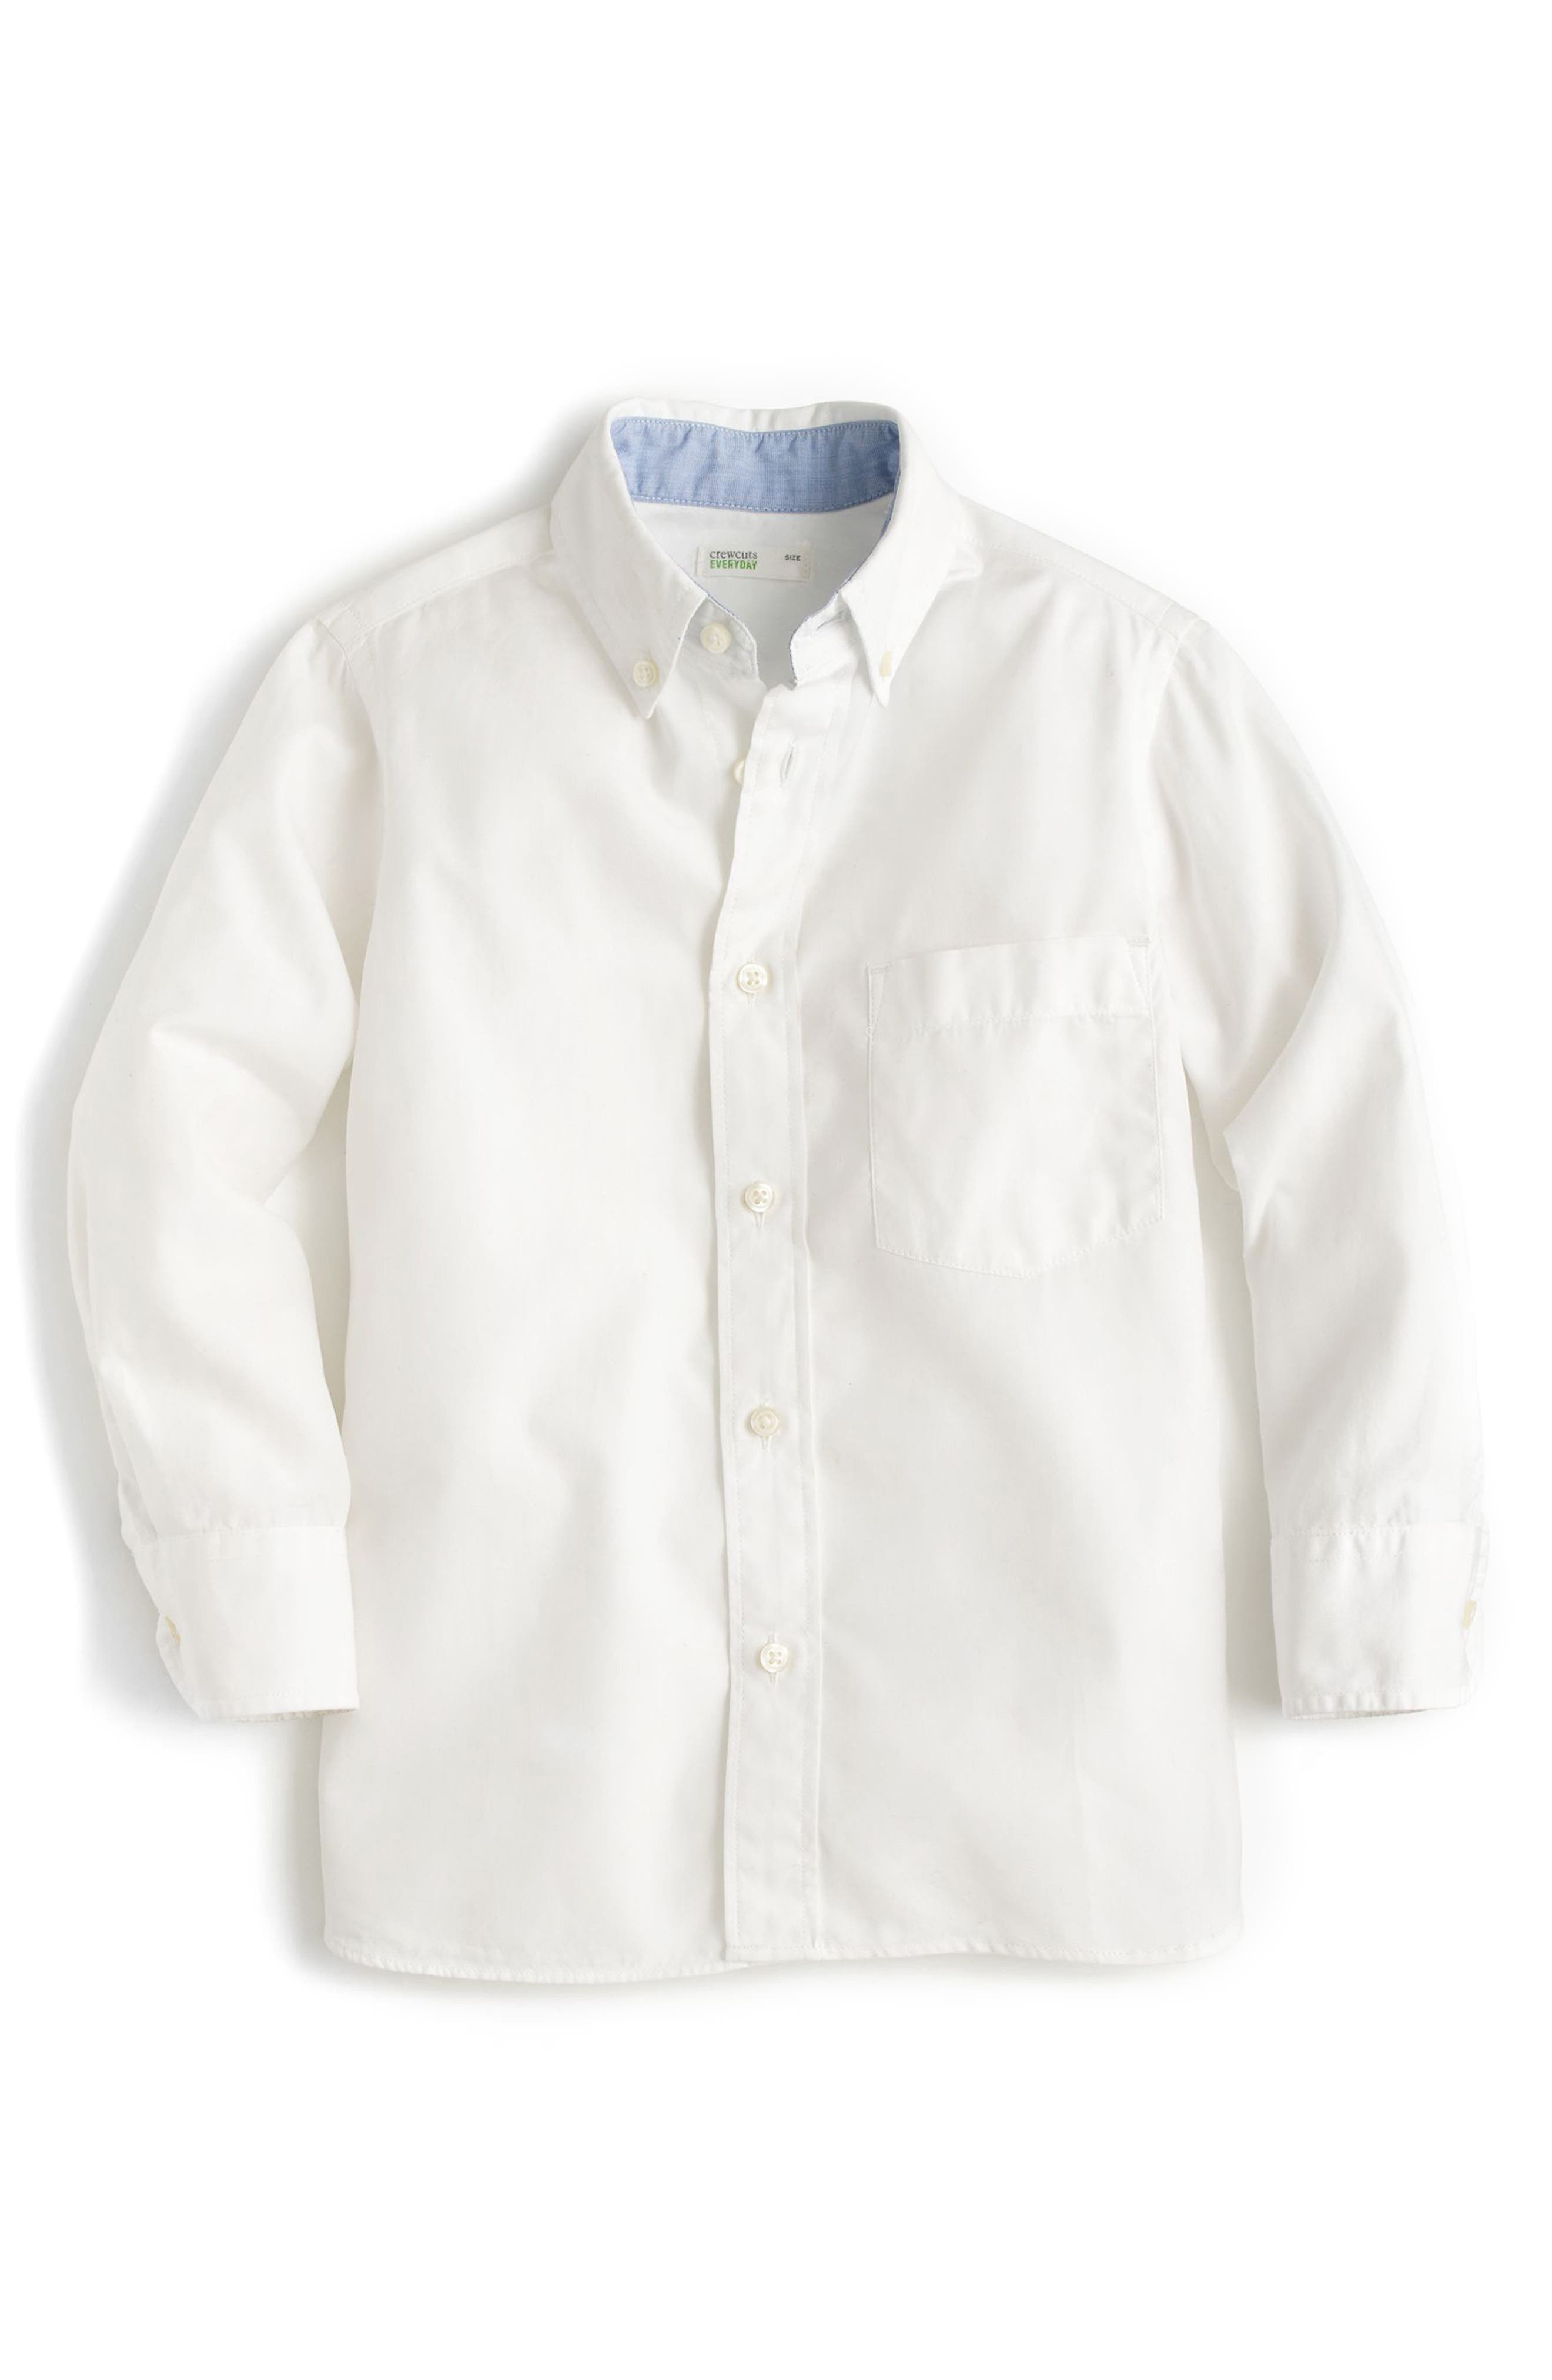 Everyday Button Down Sport Shirt,                             Main thumbnail 1, color,                             White